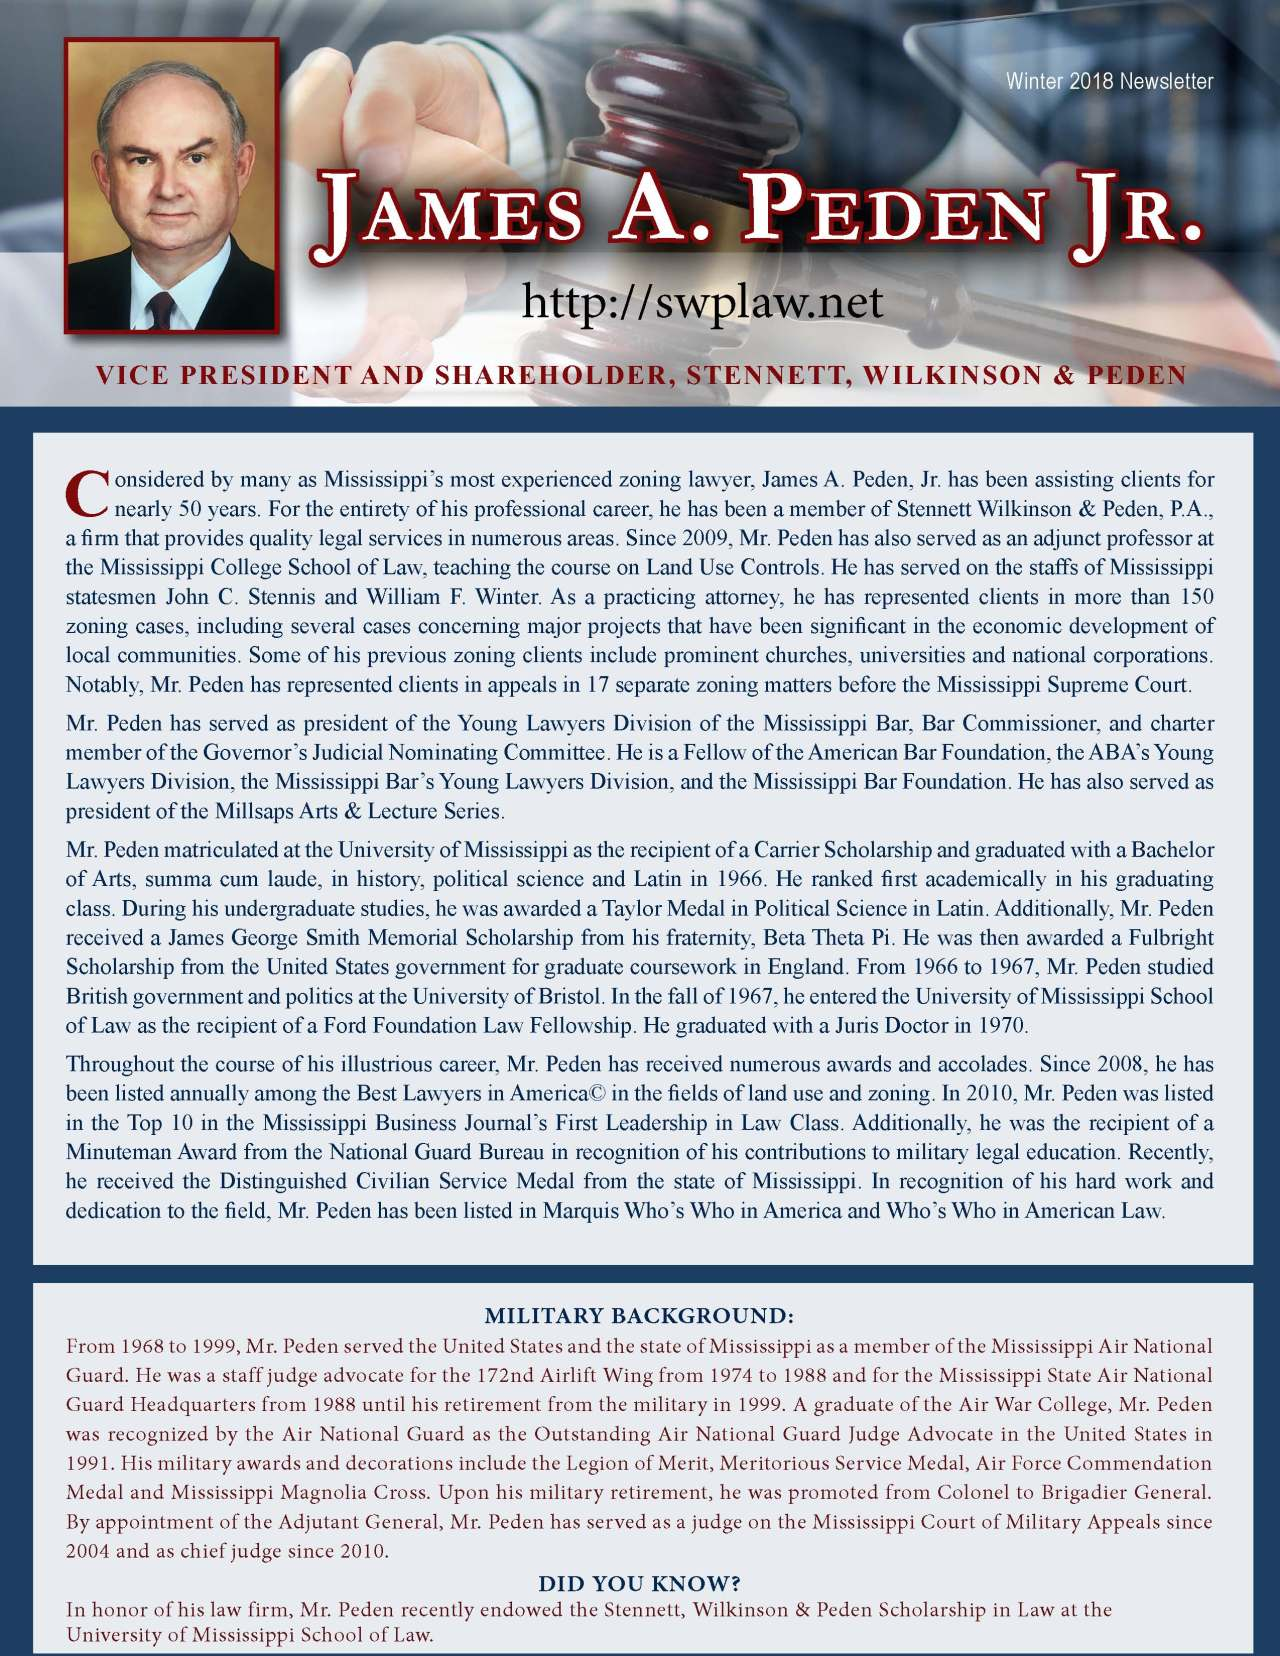 Peden, James 3681221_16911505 Newsletter REVISED.jpg